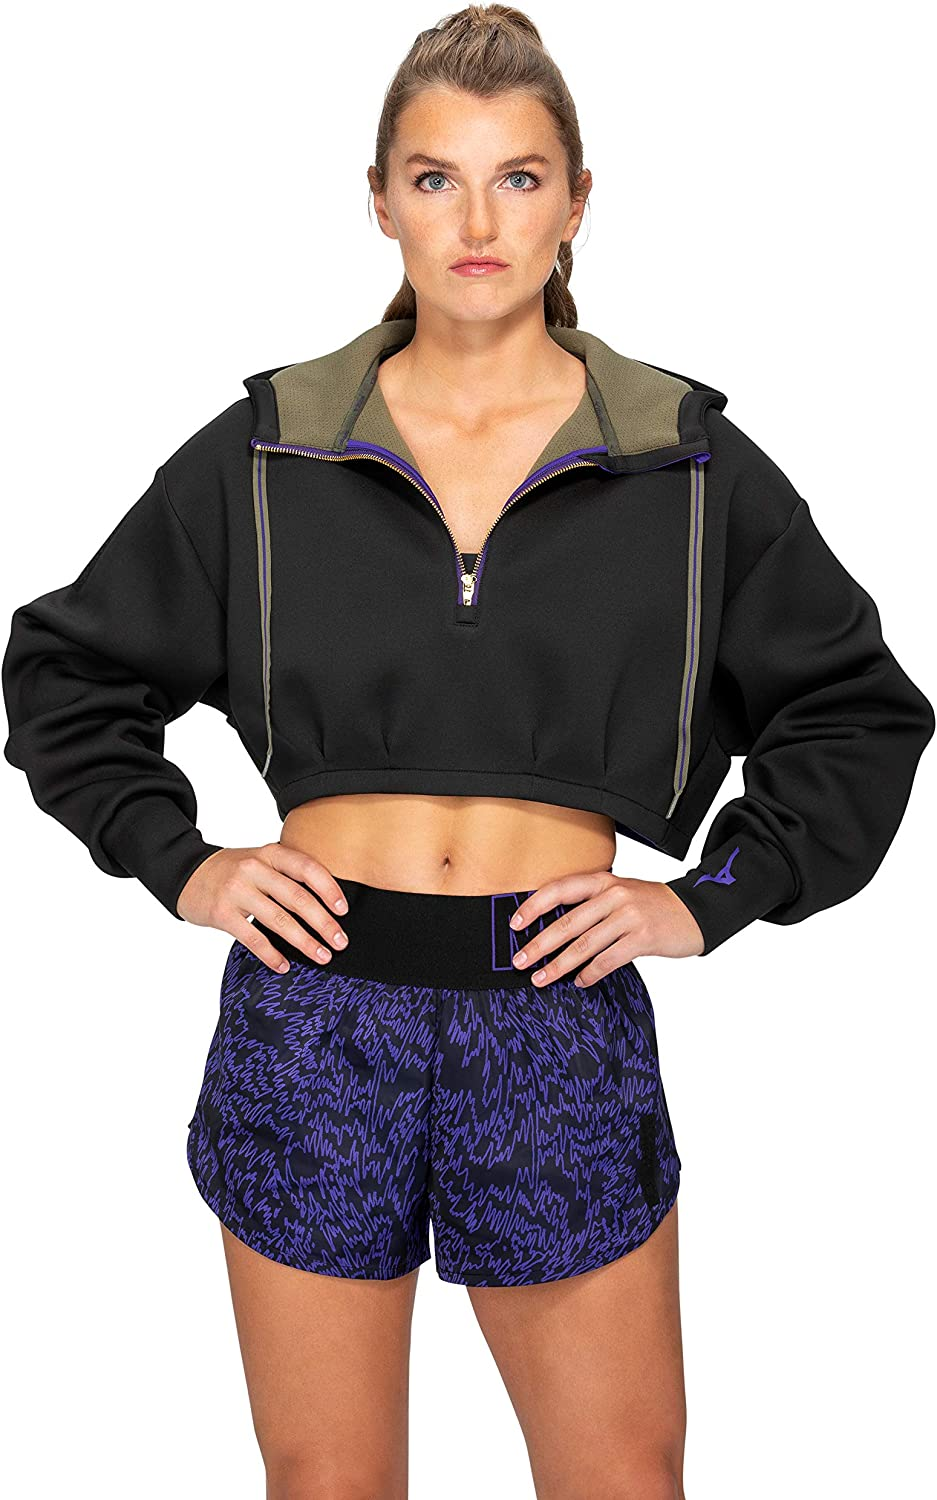 Mizuno Women's Ronda Rousey Cropped New Free Shipping Hoodie 70% OFF Outlet Reputation Zip-up